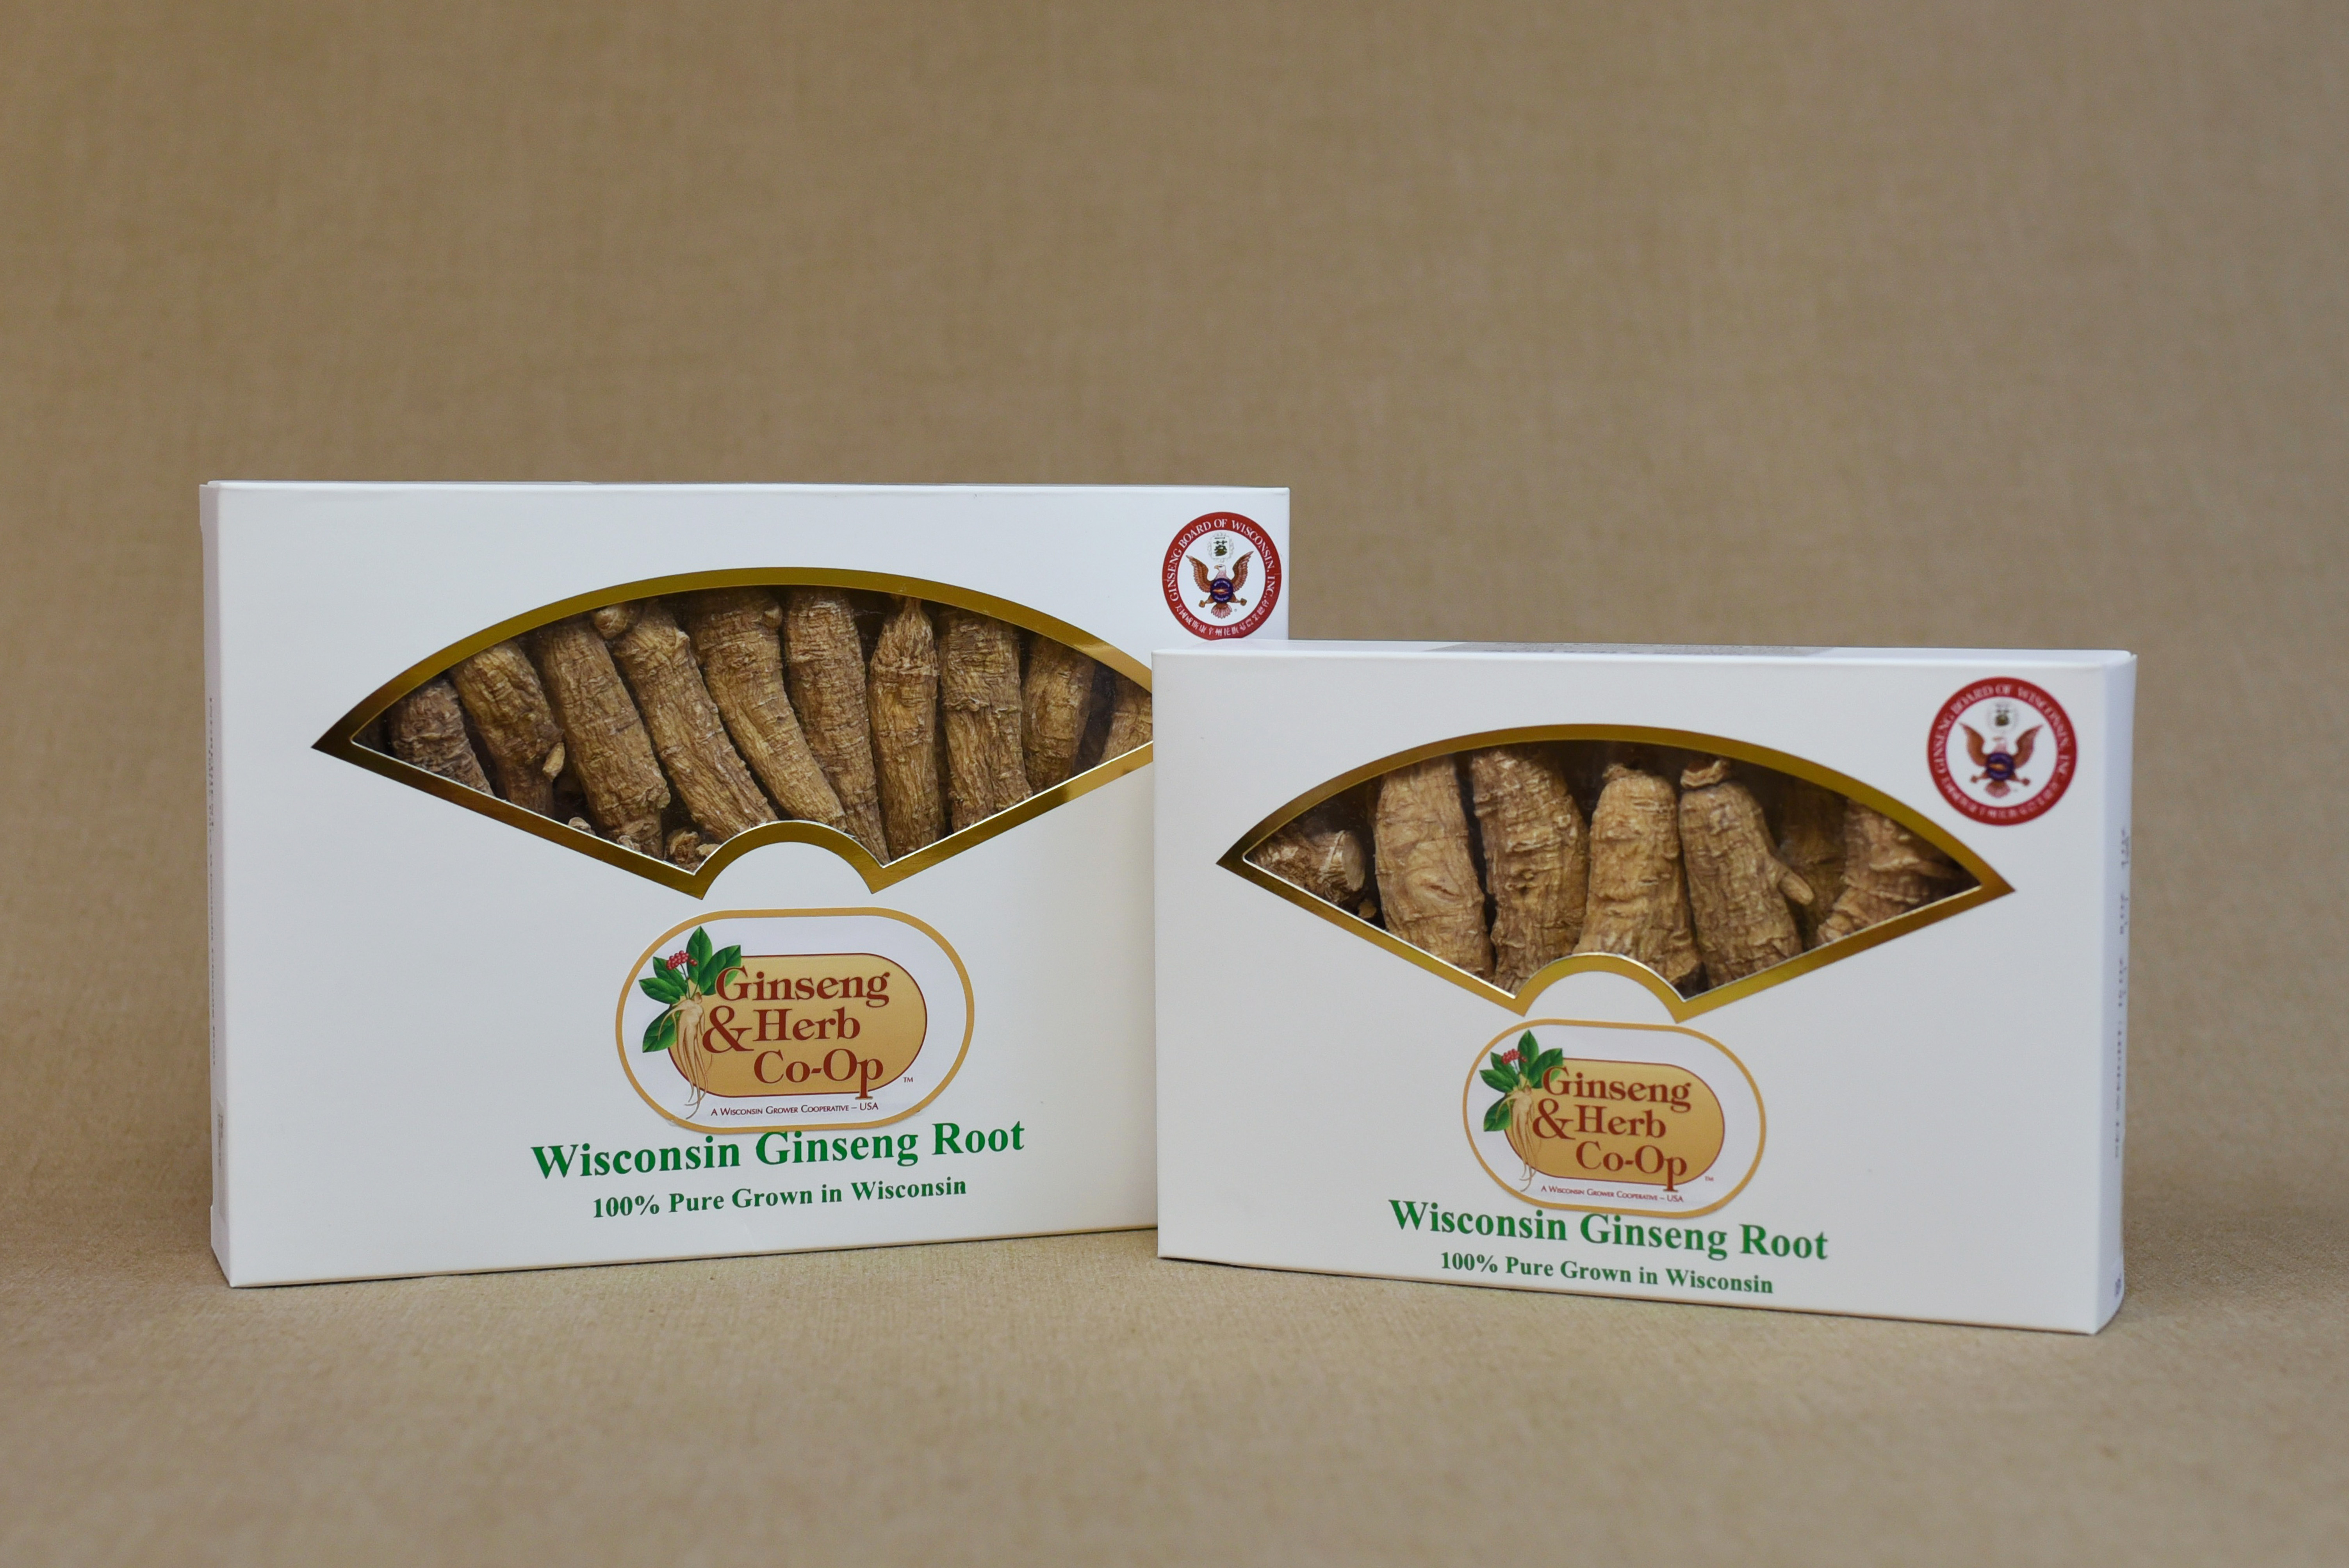 Buy Now! high quality Wisconsin Ginseng roots in Ashland, WI